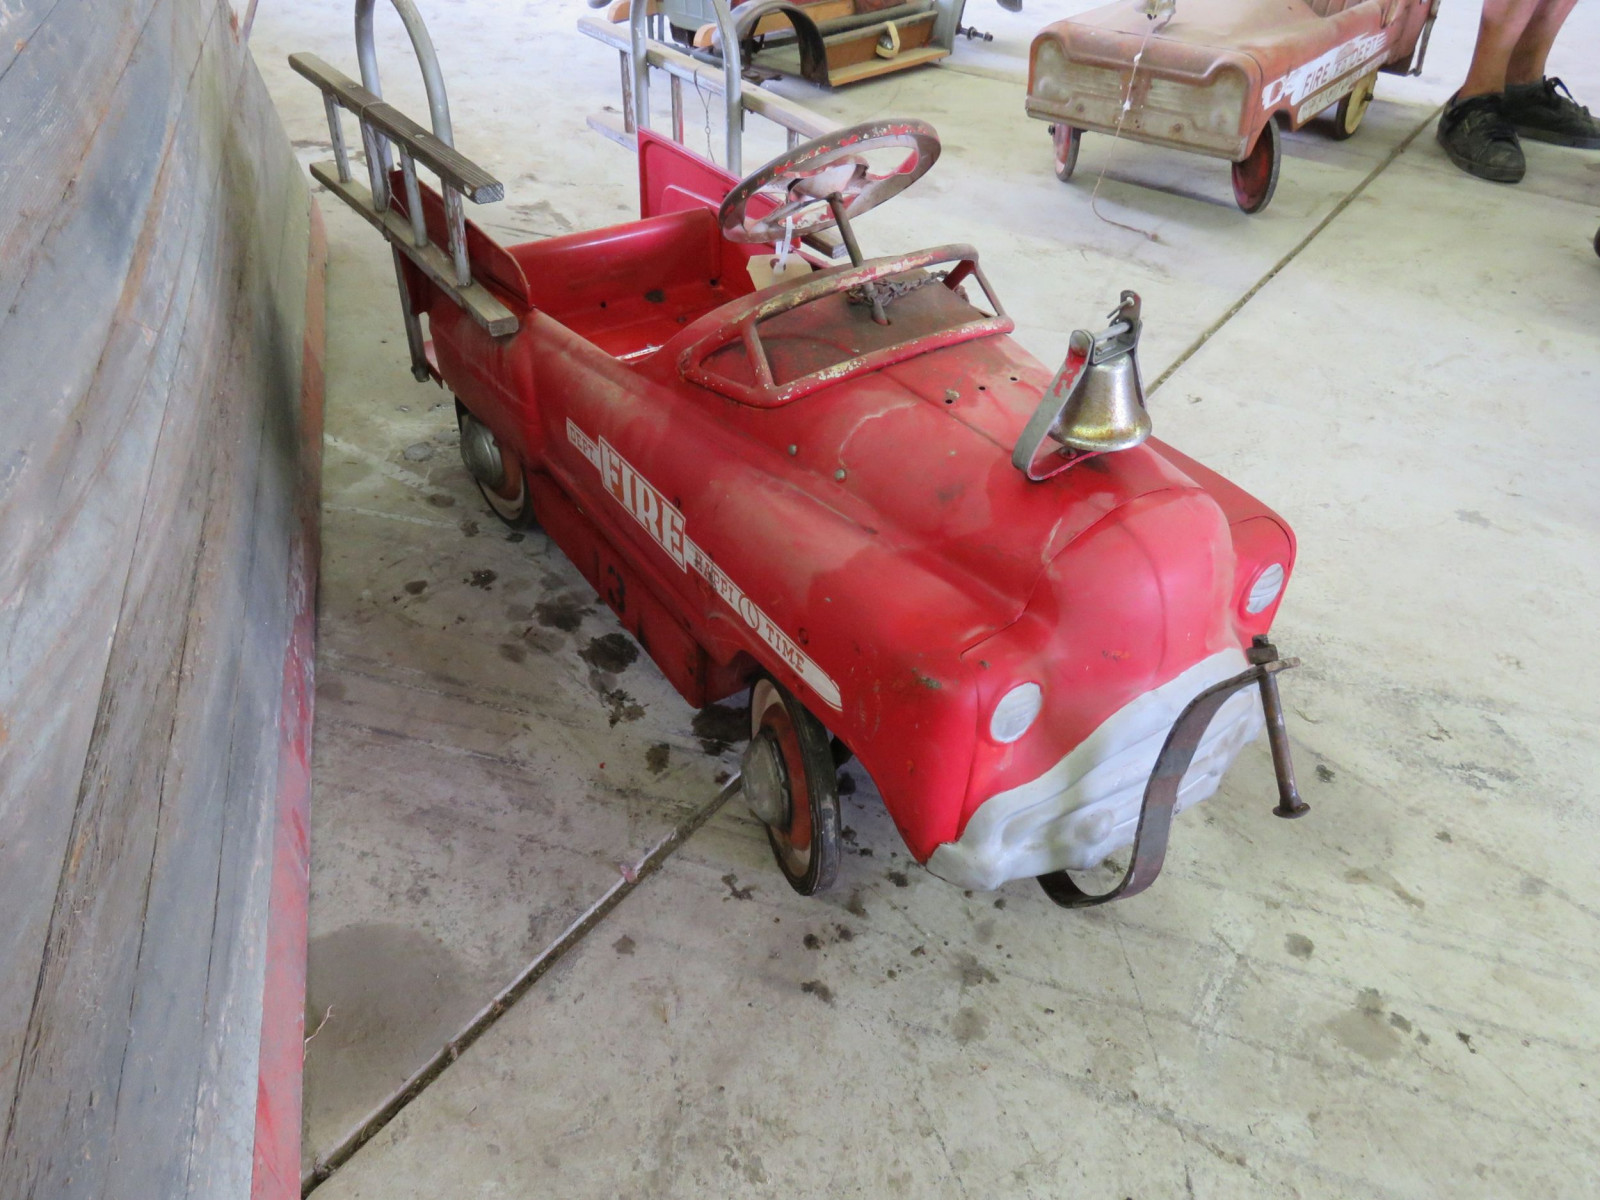 Murray Happy Time Fire Department Pedal Car - Image 2